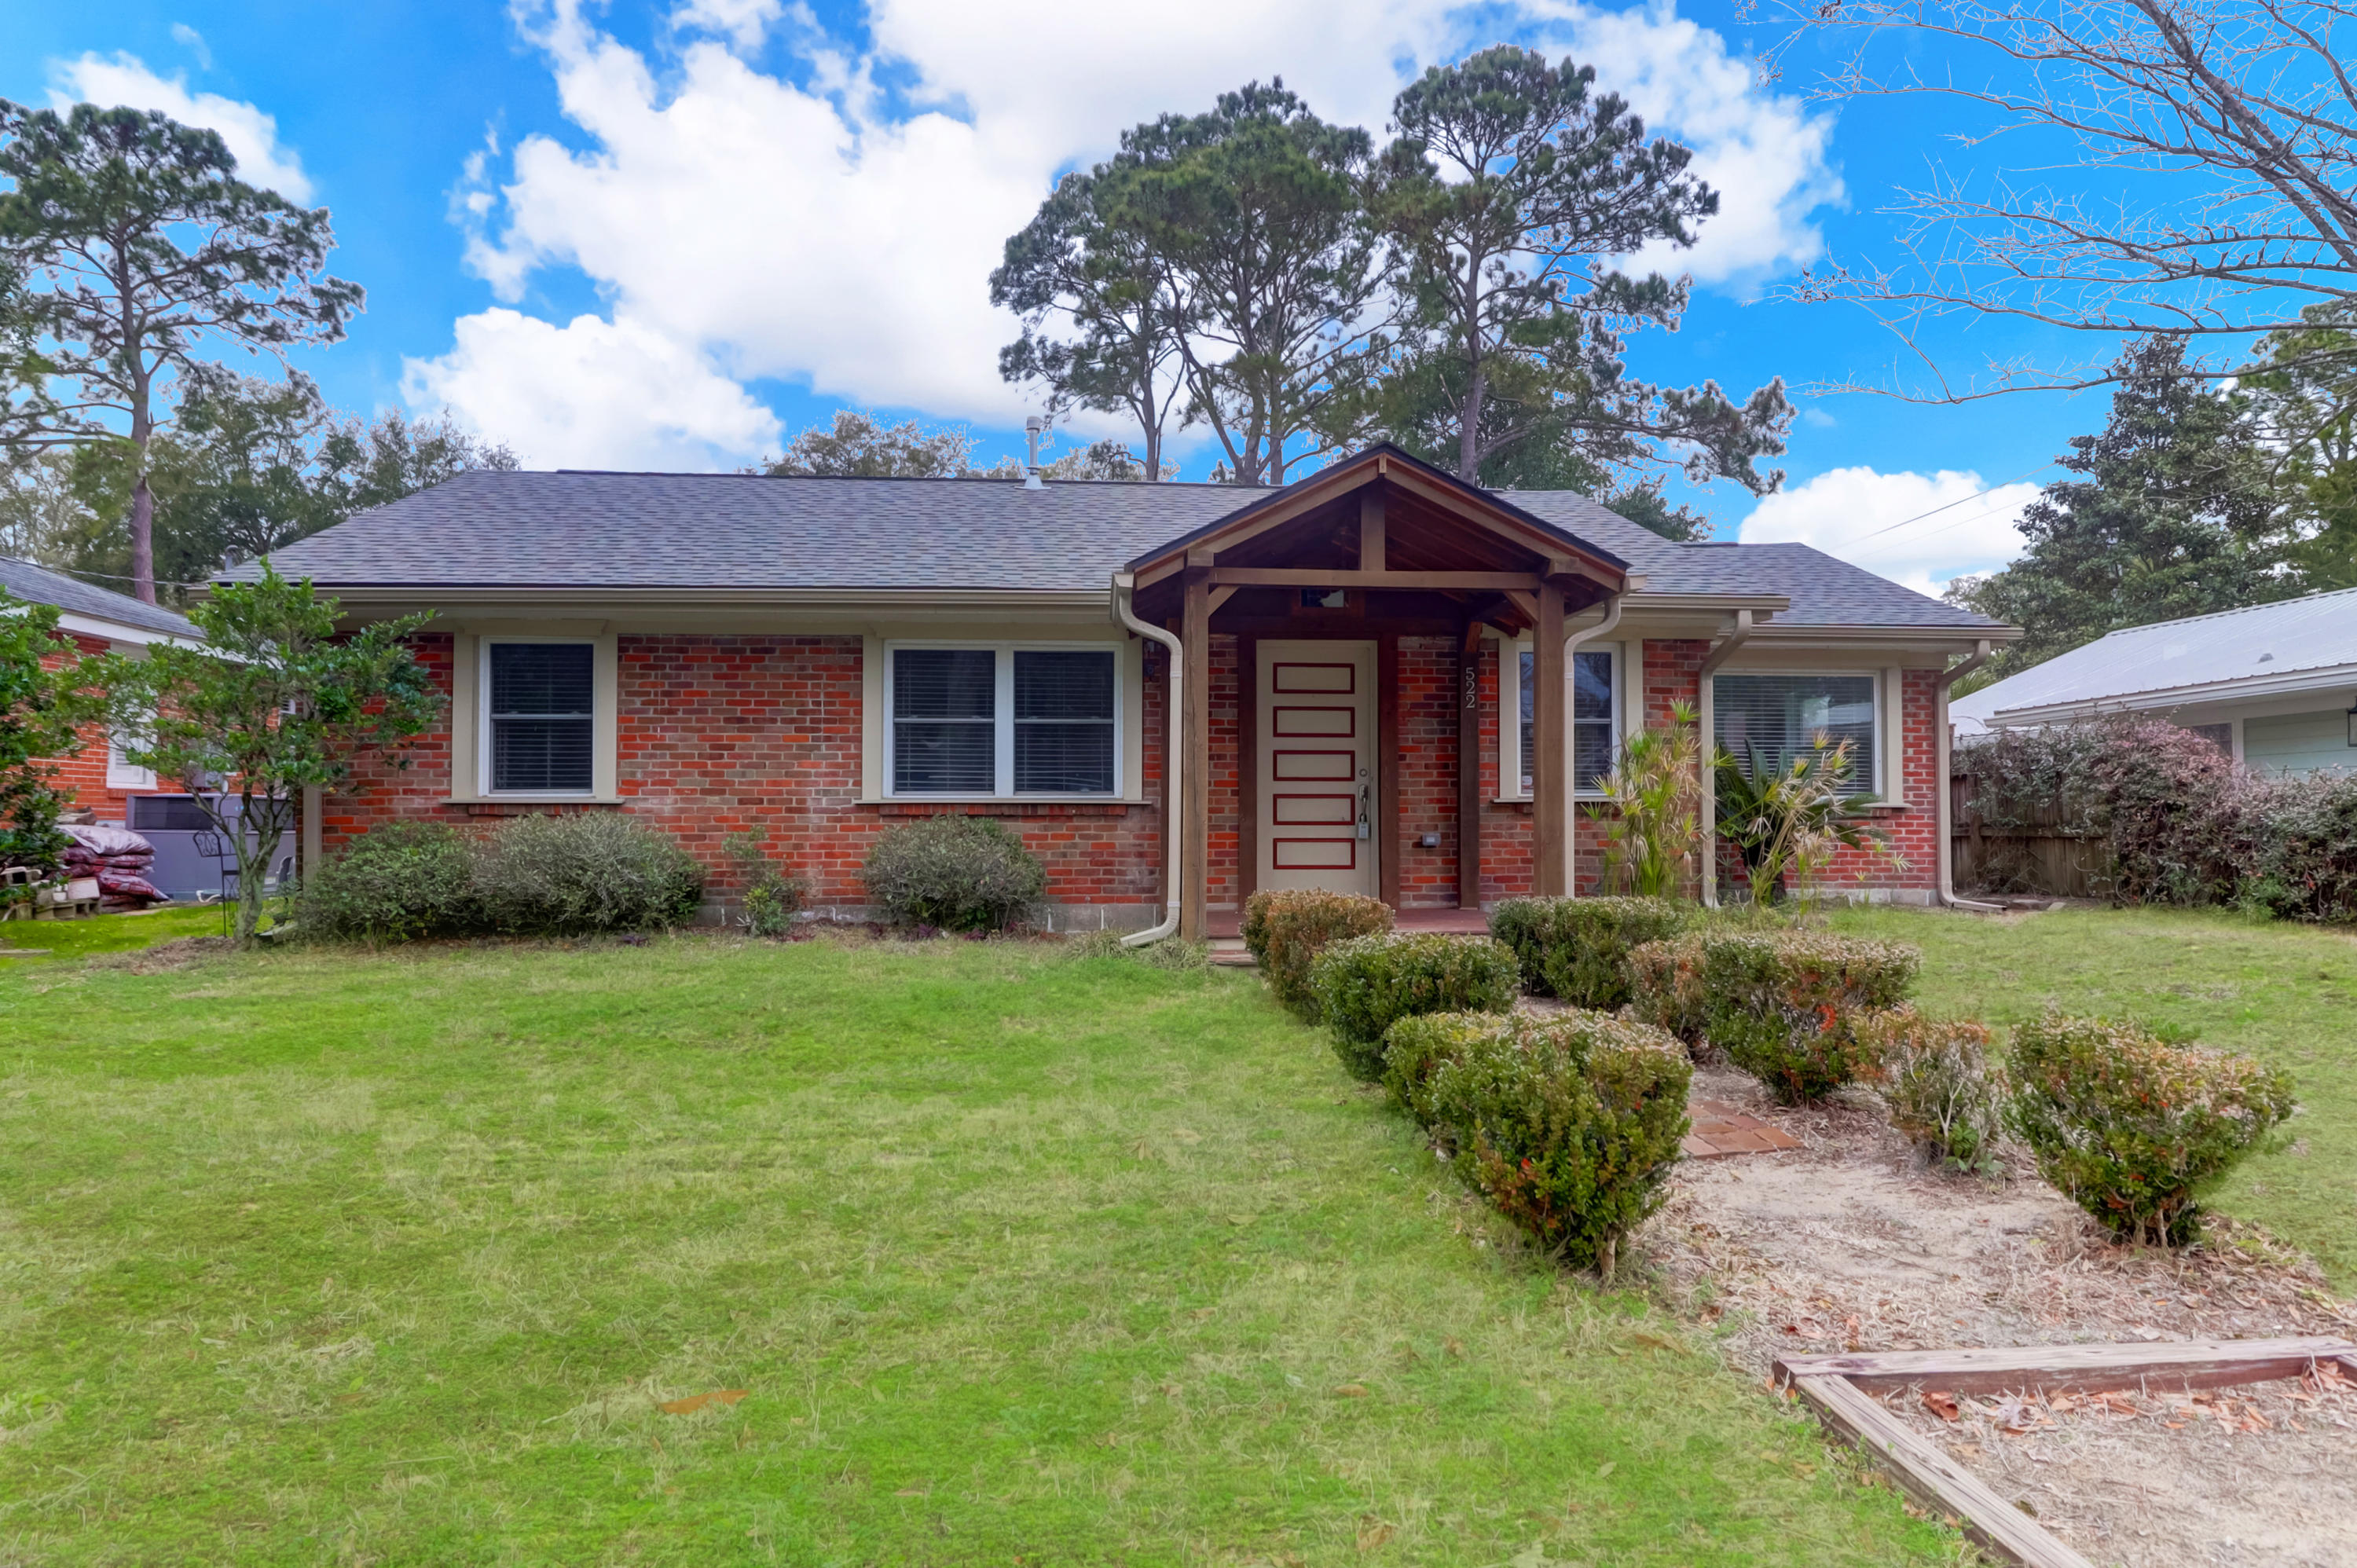 Old Mt Pleasant Homes For Sale - 522 Ruby, Mount Pleasant, SC - 27